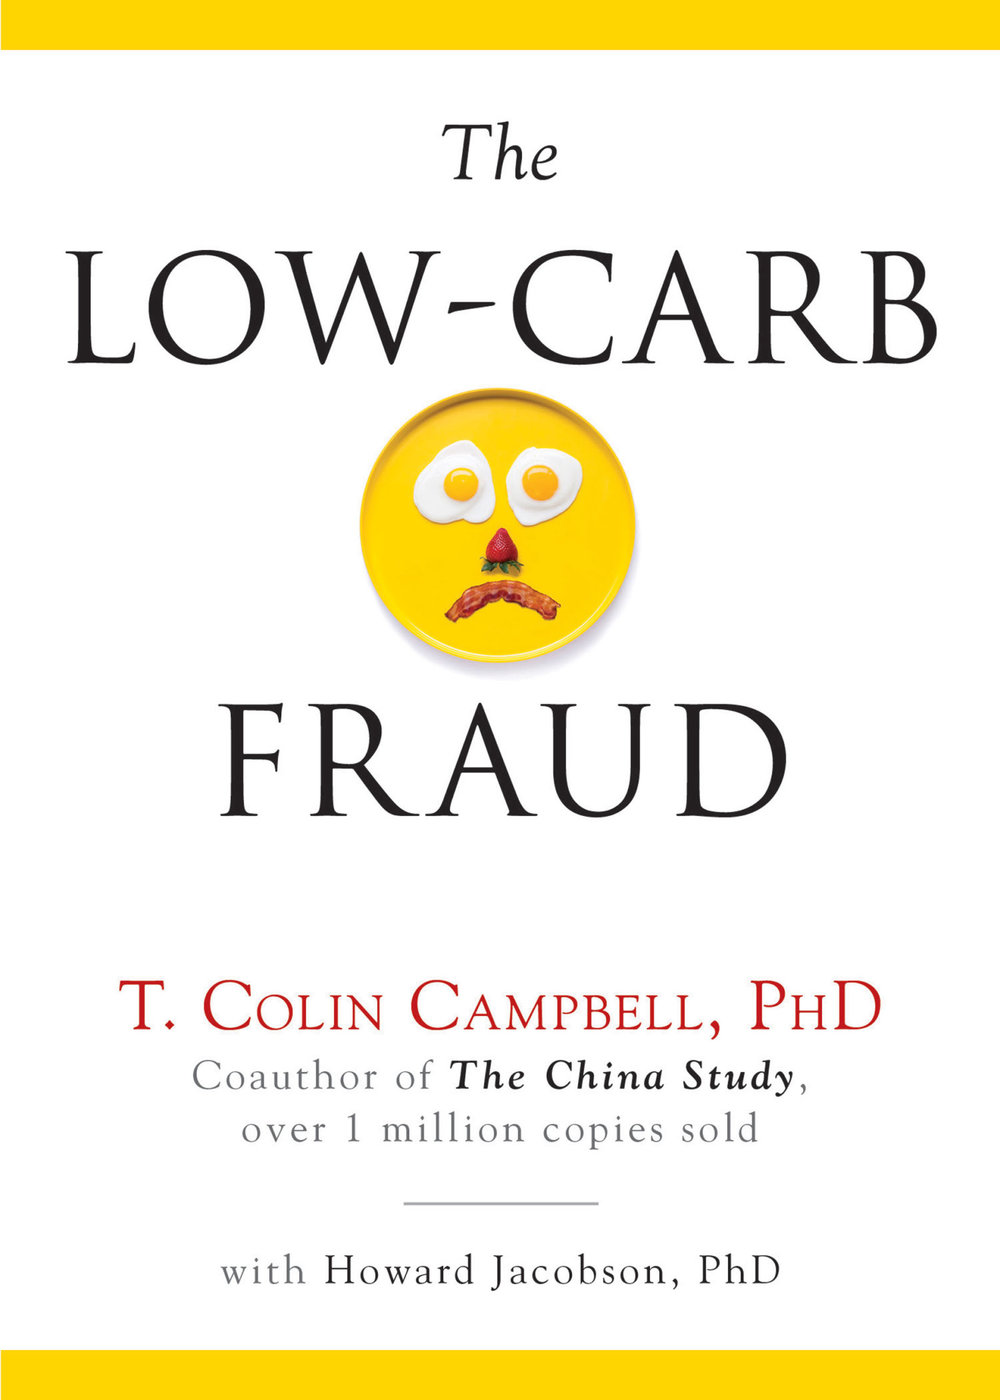 The Low-Carb Fraud  by T. Colin Campbell, PhD